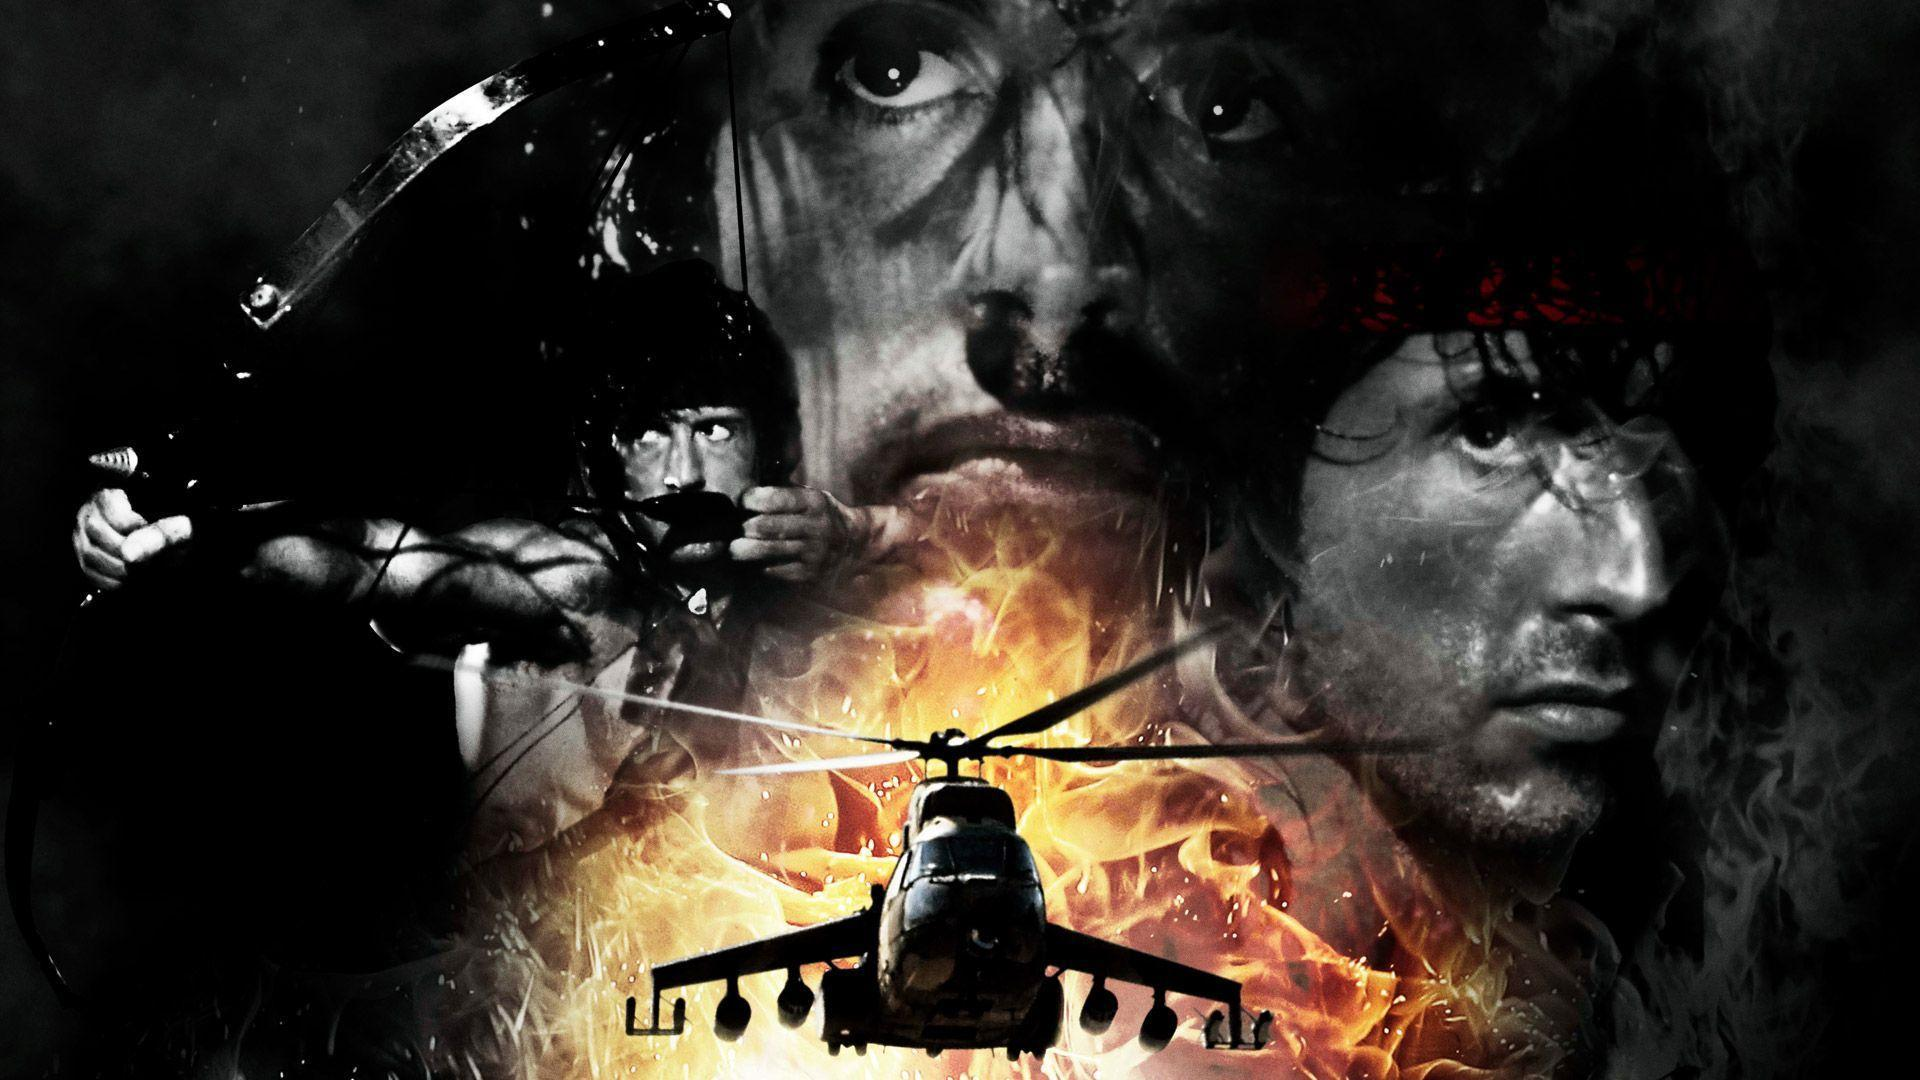 free helicopter games for android with Rambo Wallpapers on Black Widow Spider Facts further bkminegames together with Vasco Da Gama Ac plishments moreover Details besides Skullcandy And Astro Team Up For Special Edition Xbox One Headset.